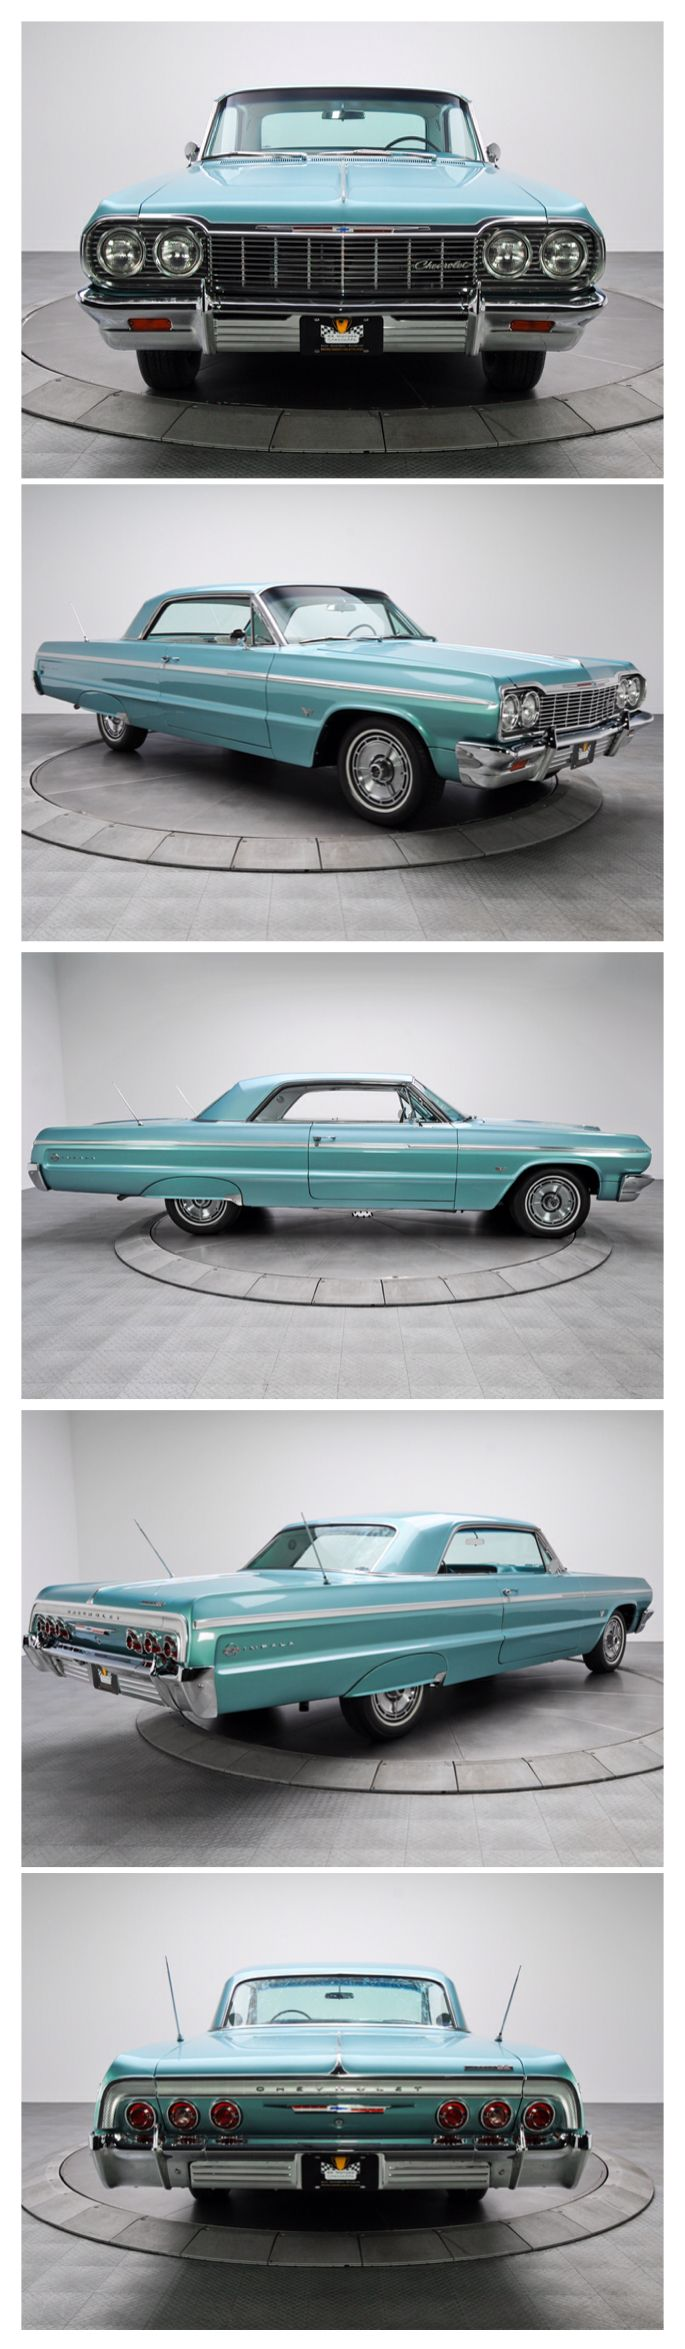 1964 Chevy Impala SS.  As an 8 yr old little girl THIS was THE 1st car I ever took notice of and what started my love for cars.  I'd get excited when my daddy brought home a new car and I'd run out to see every inch of it.  I loved watching my daddy work on his cars.  =D